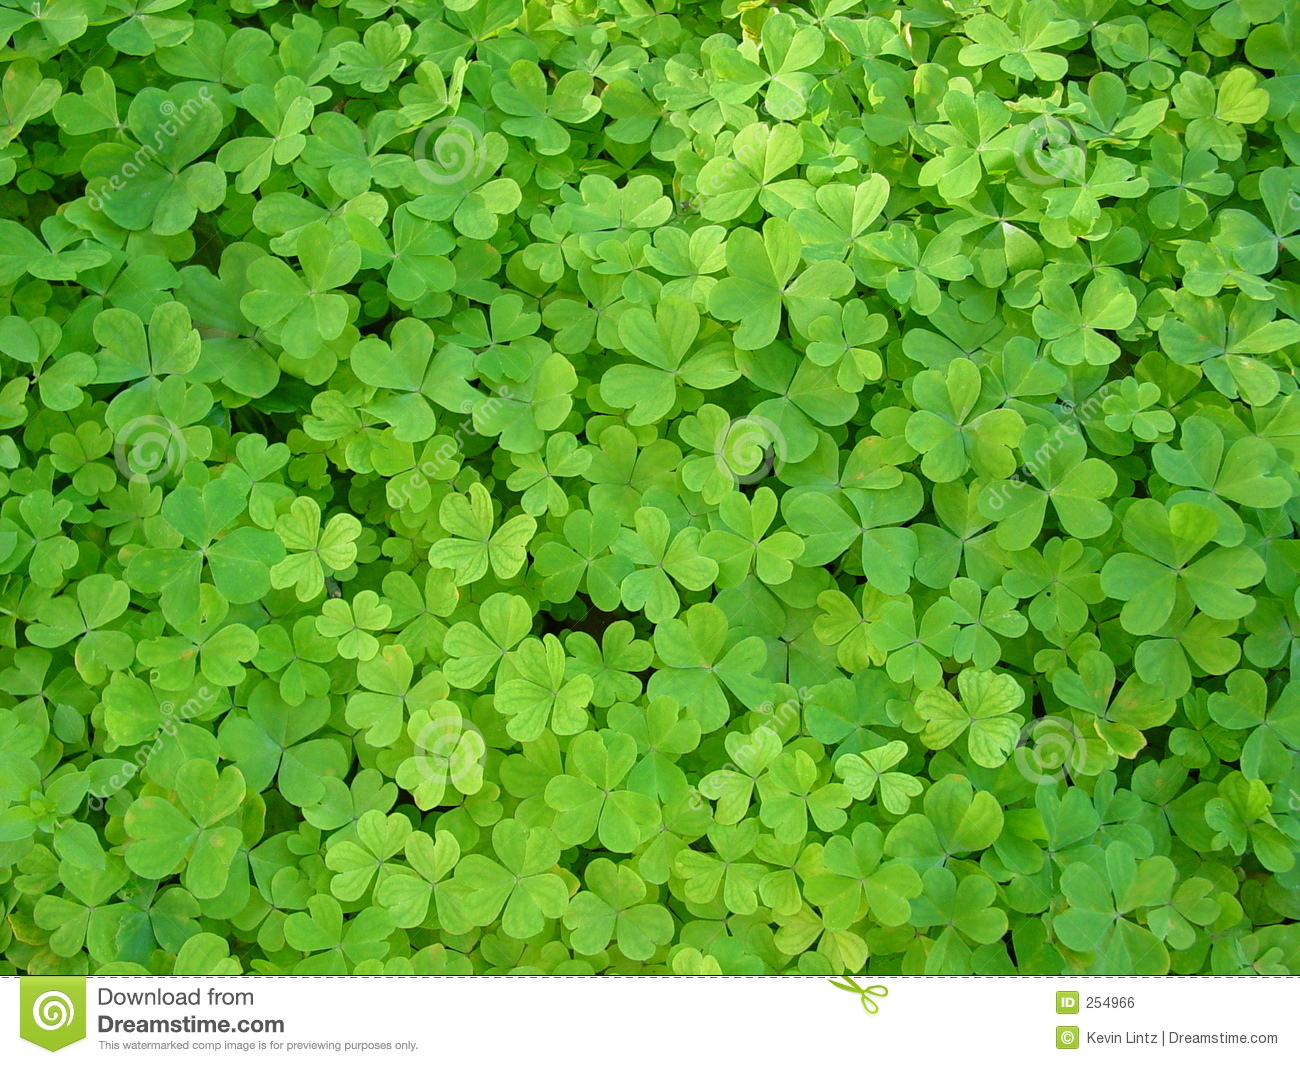 Clover Patch Royalty Free Stock Image - Image: 254966